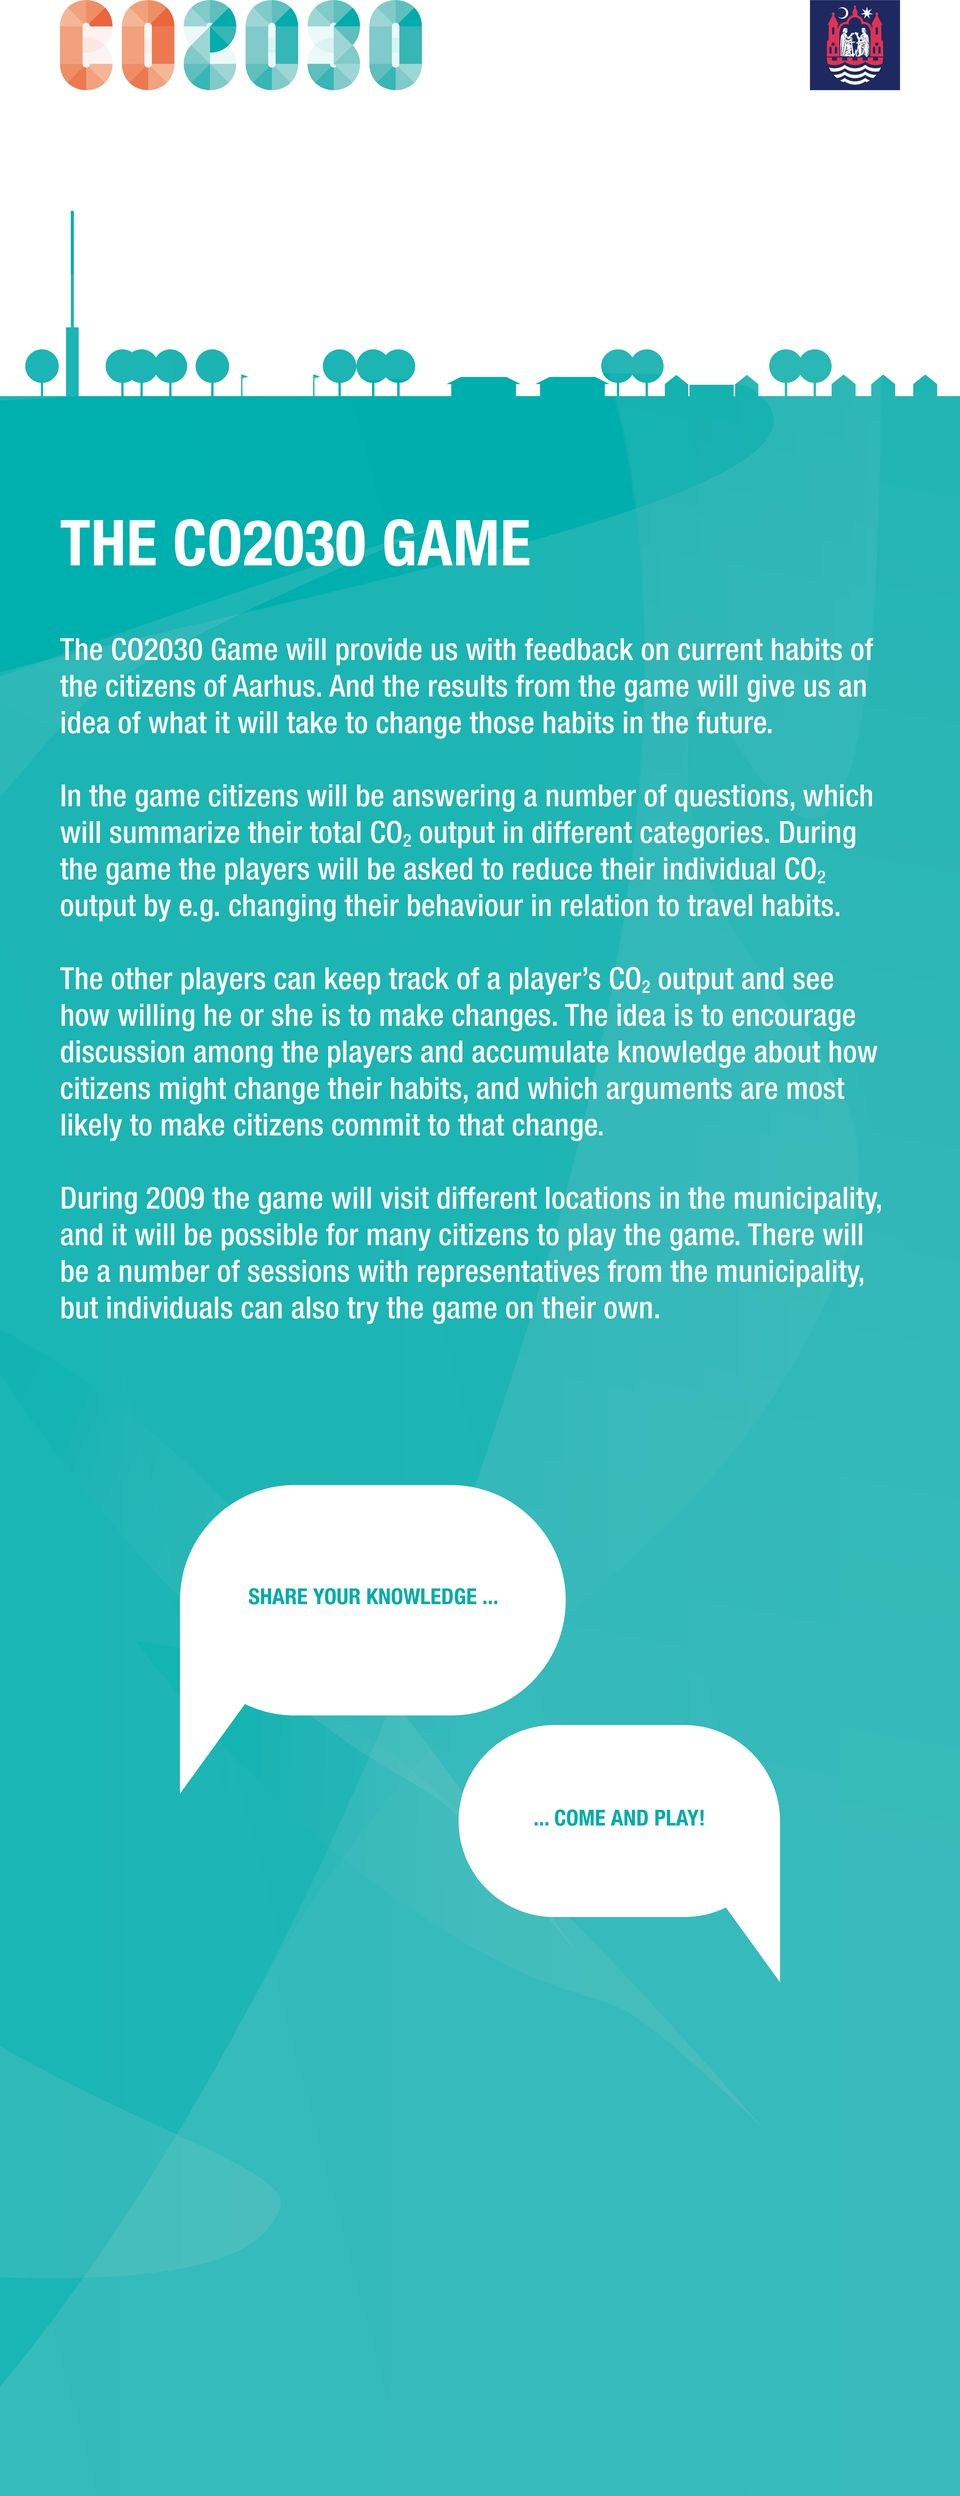 In the game citizens will be answering a number of questions, which will summarize their total CO output in different categories.